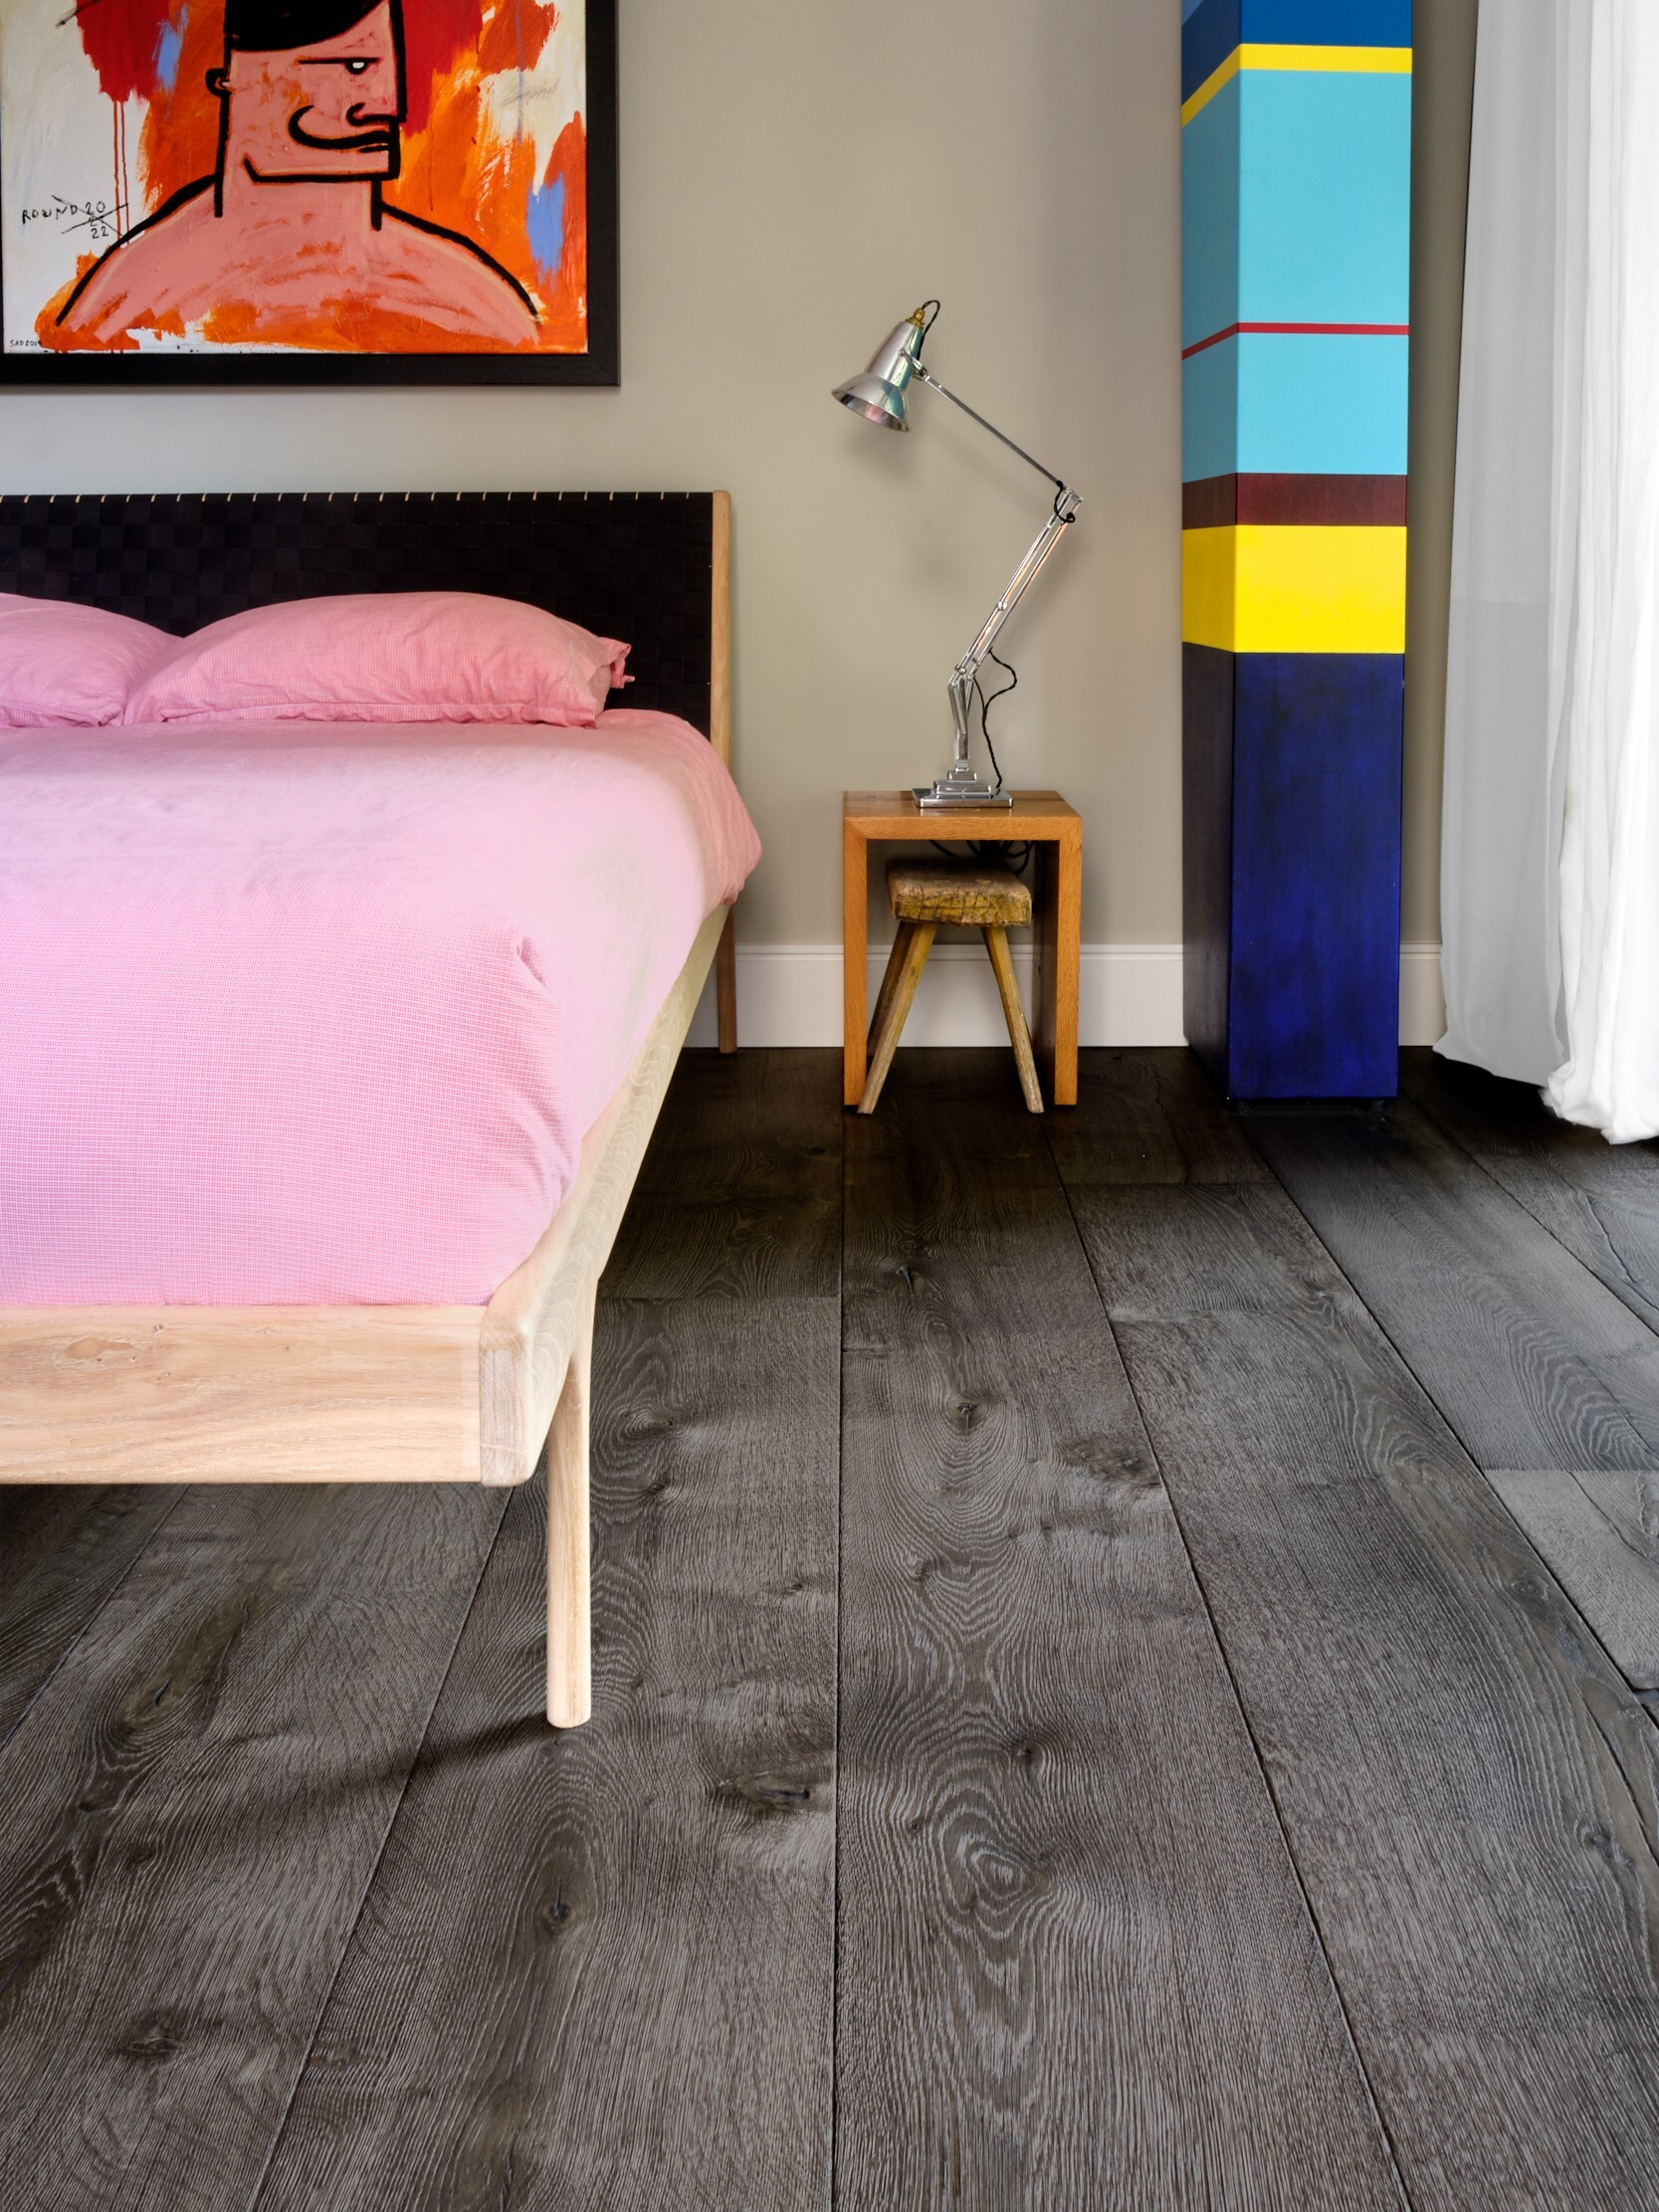 Magma mayon dark textured oak engineered floor in bedroom with colourful art and anglepoise lamp